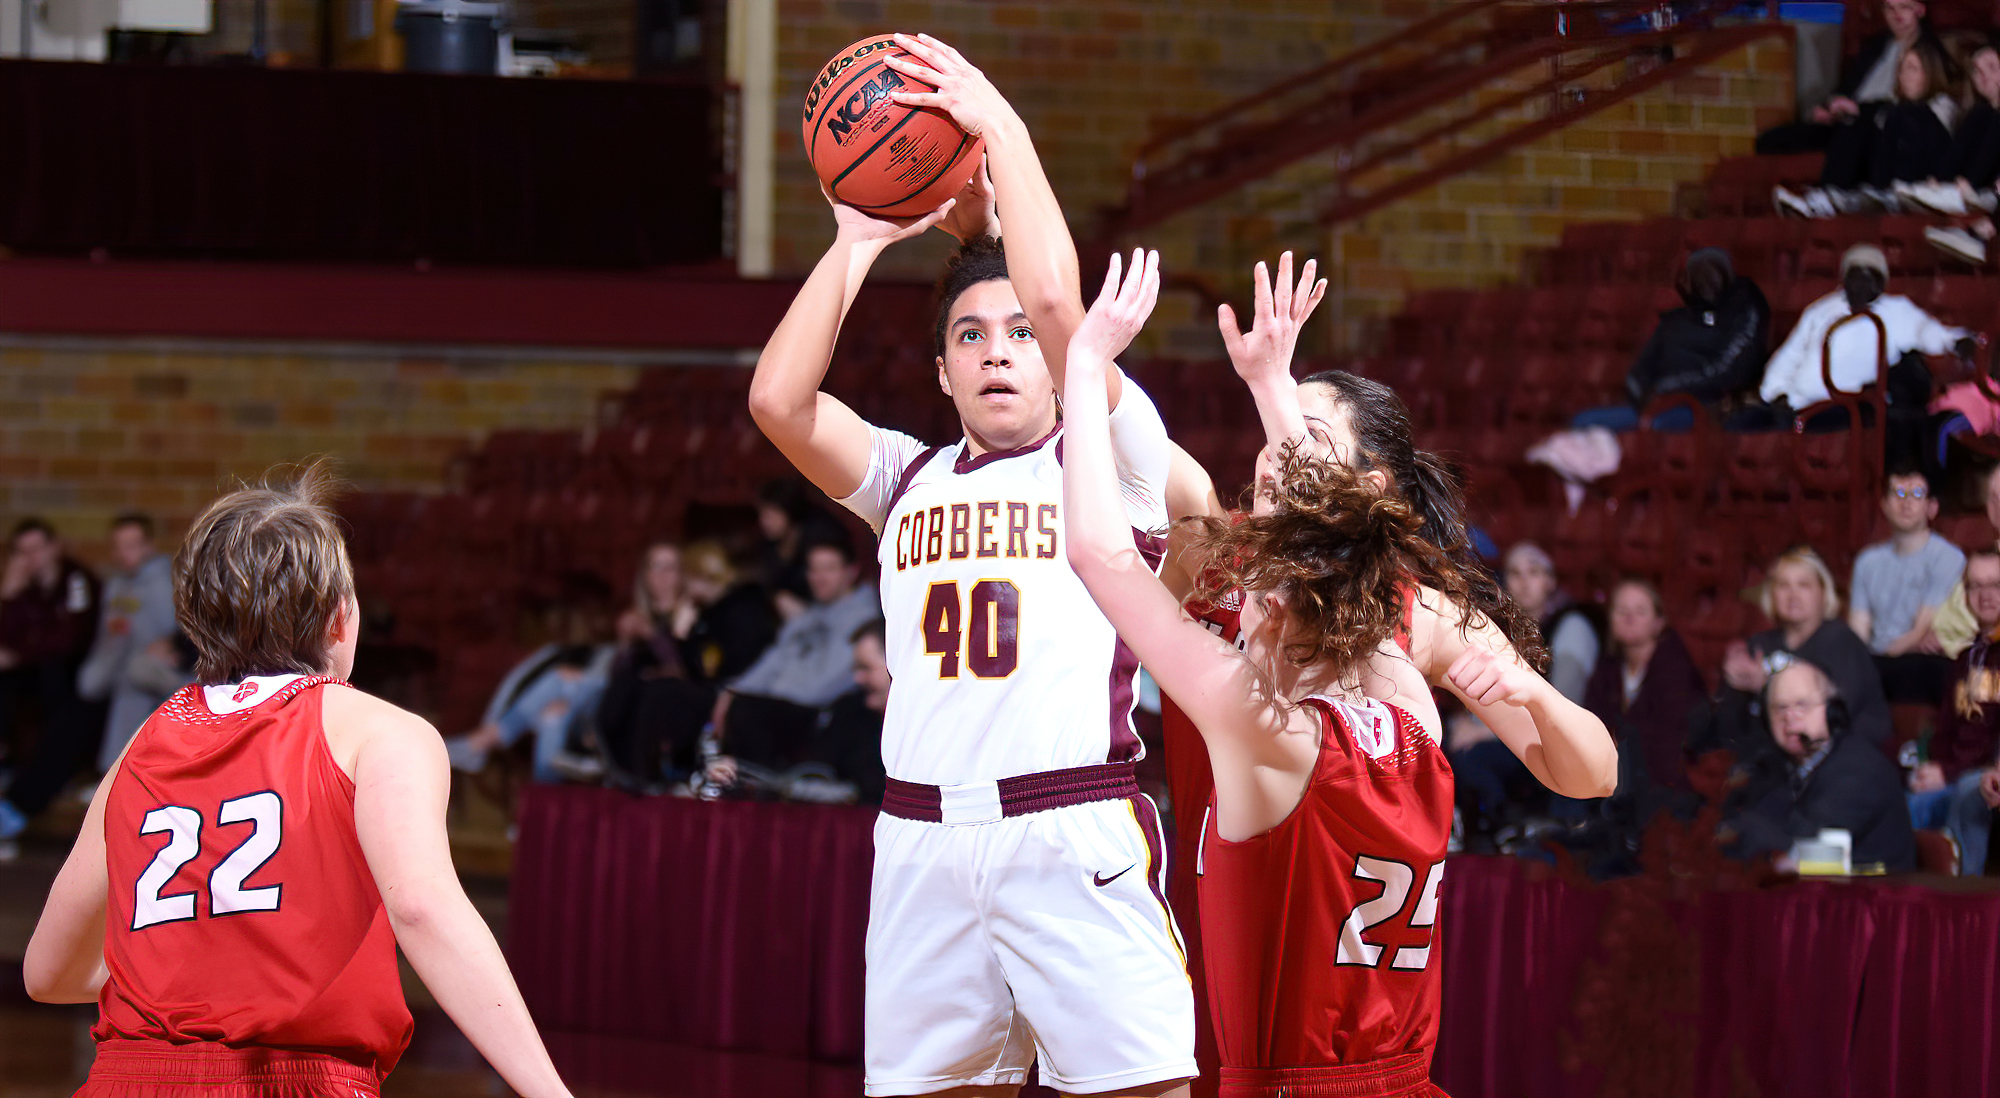 Sophomore Vanessa Kedl had a career-high 14 points in the Cobbers' season opener at St. Ben's. She was one of four CC players with at least 10 points in the game.